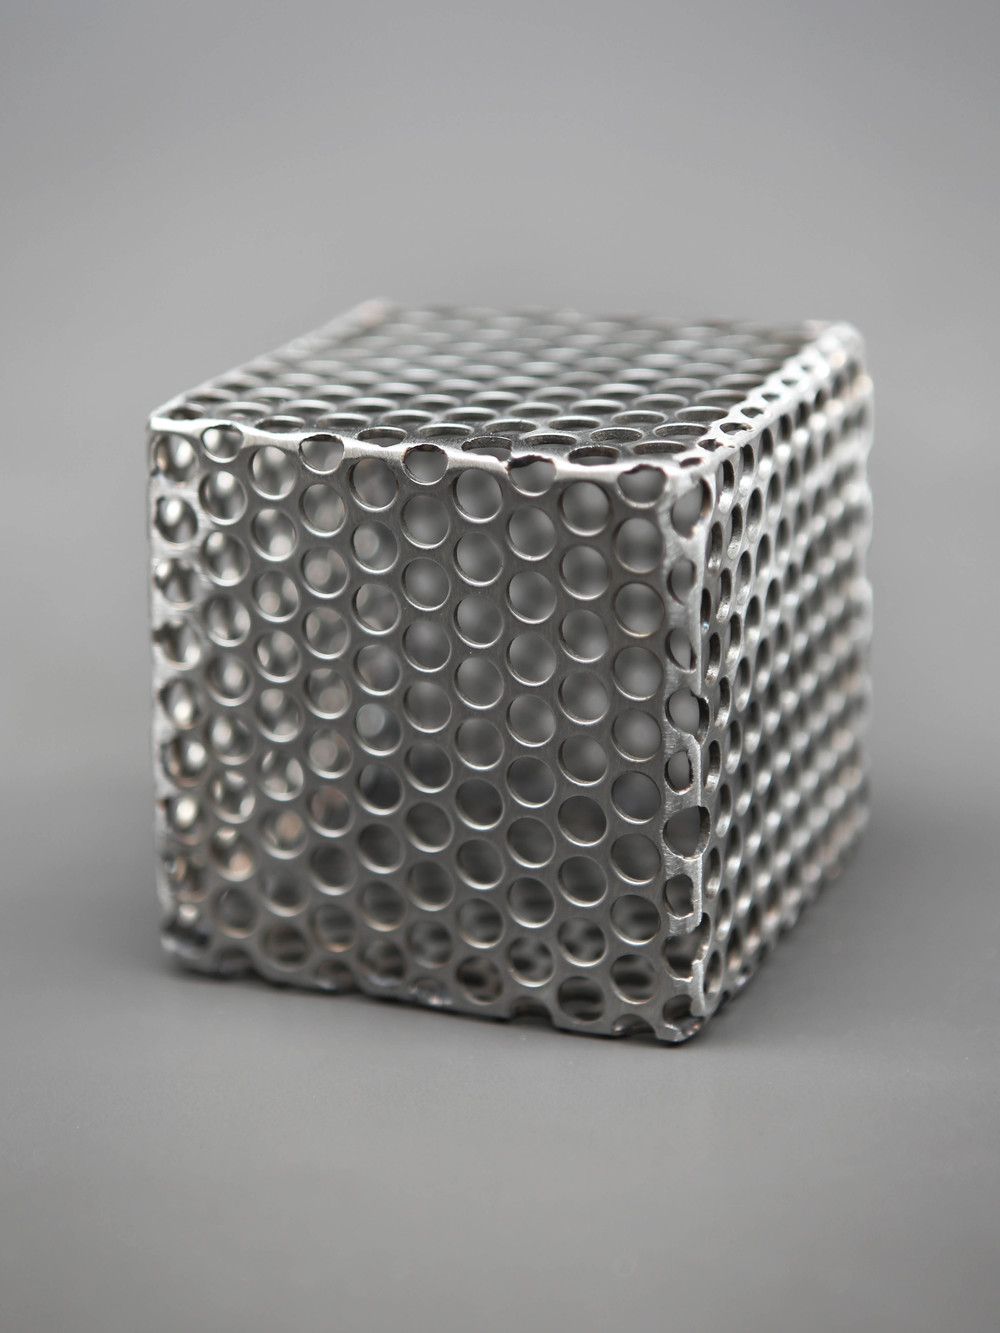 Perforated Steel Cube by Elektra Steel